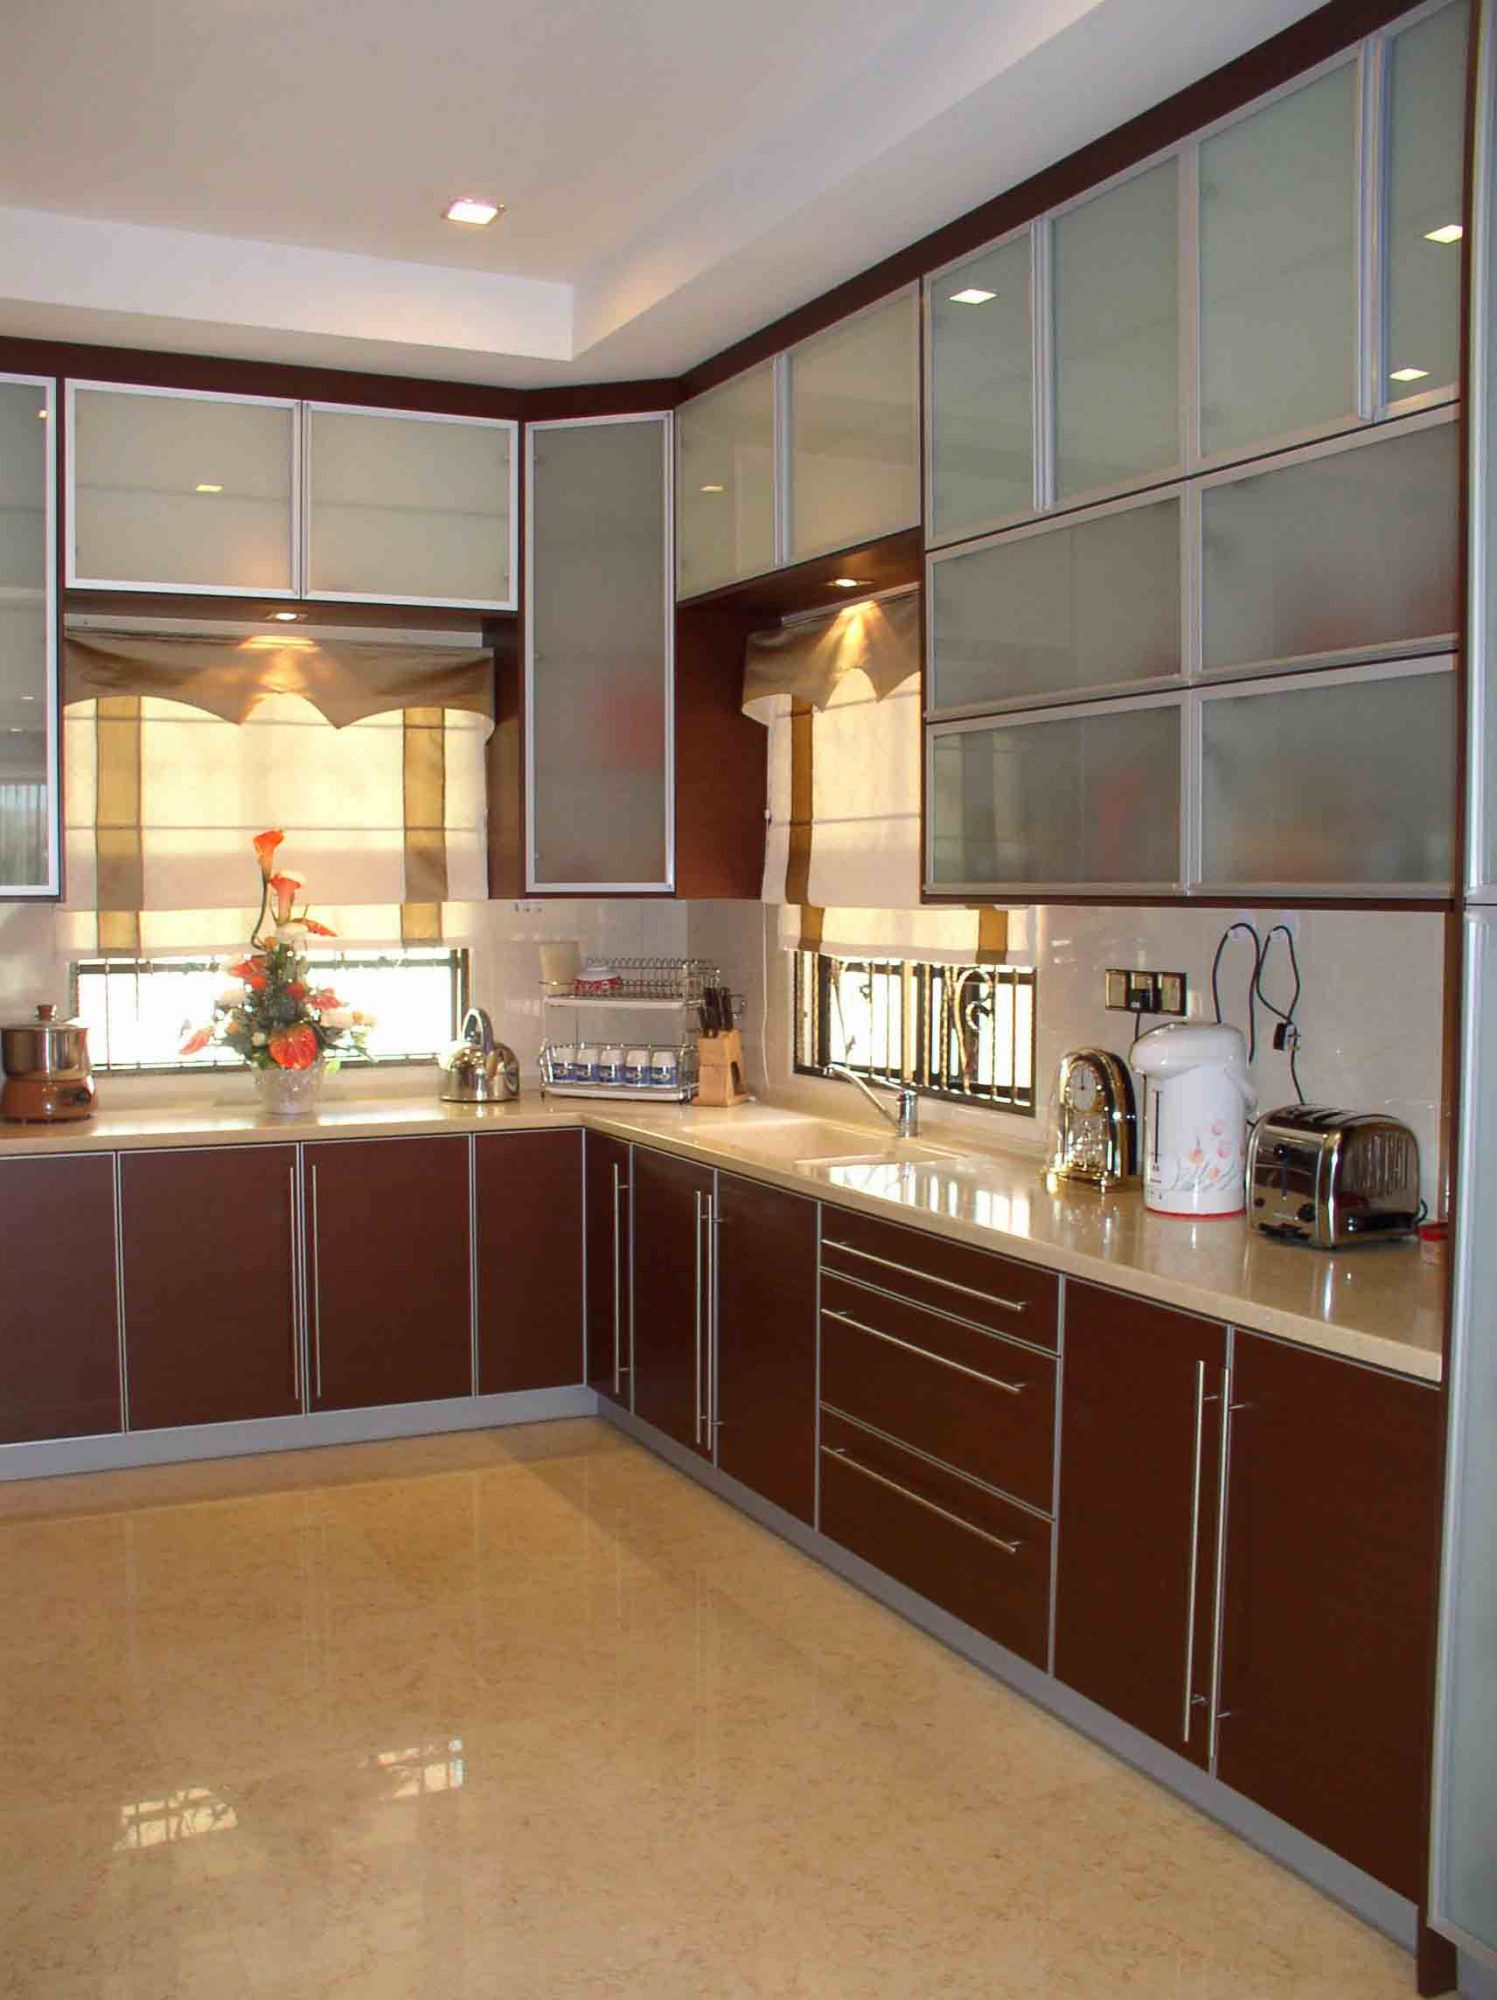 20 Popular Kitchen Cabinet Designs In Malaysia  Recommend. Living Room With Dining Room Designs. Black And Red Dining Room. Drawing Room Interior Design Ideas. Commercial Laundry Room Design. Quotes For Kids Rooms. Dining Room Buffet Cabinet Designs. Cool Media Rooms. Medical Room Dividers